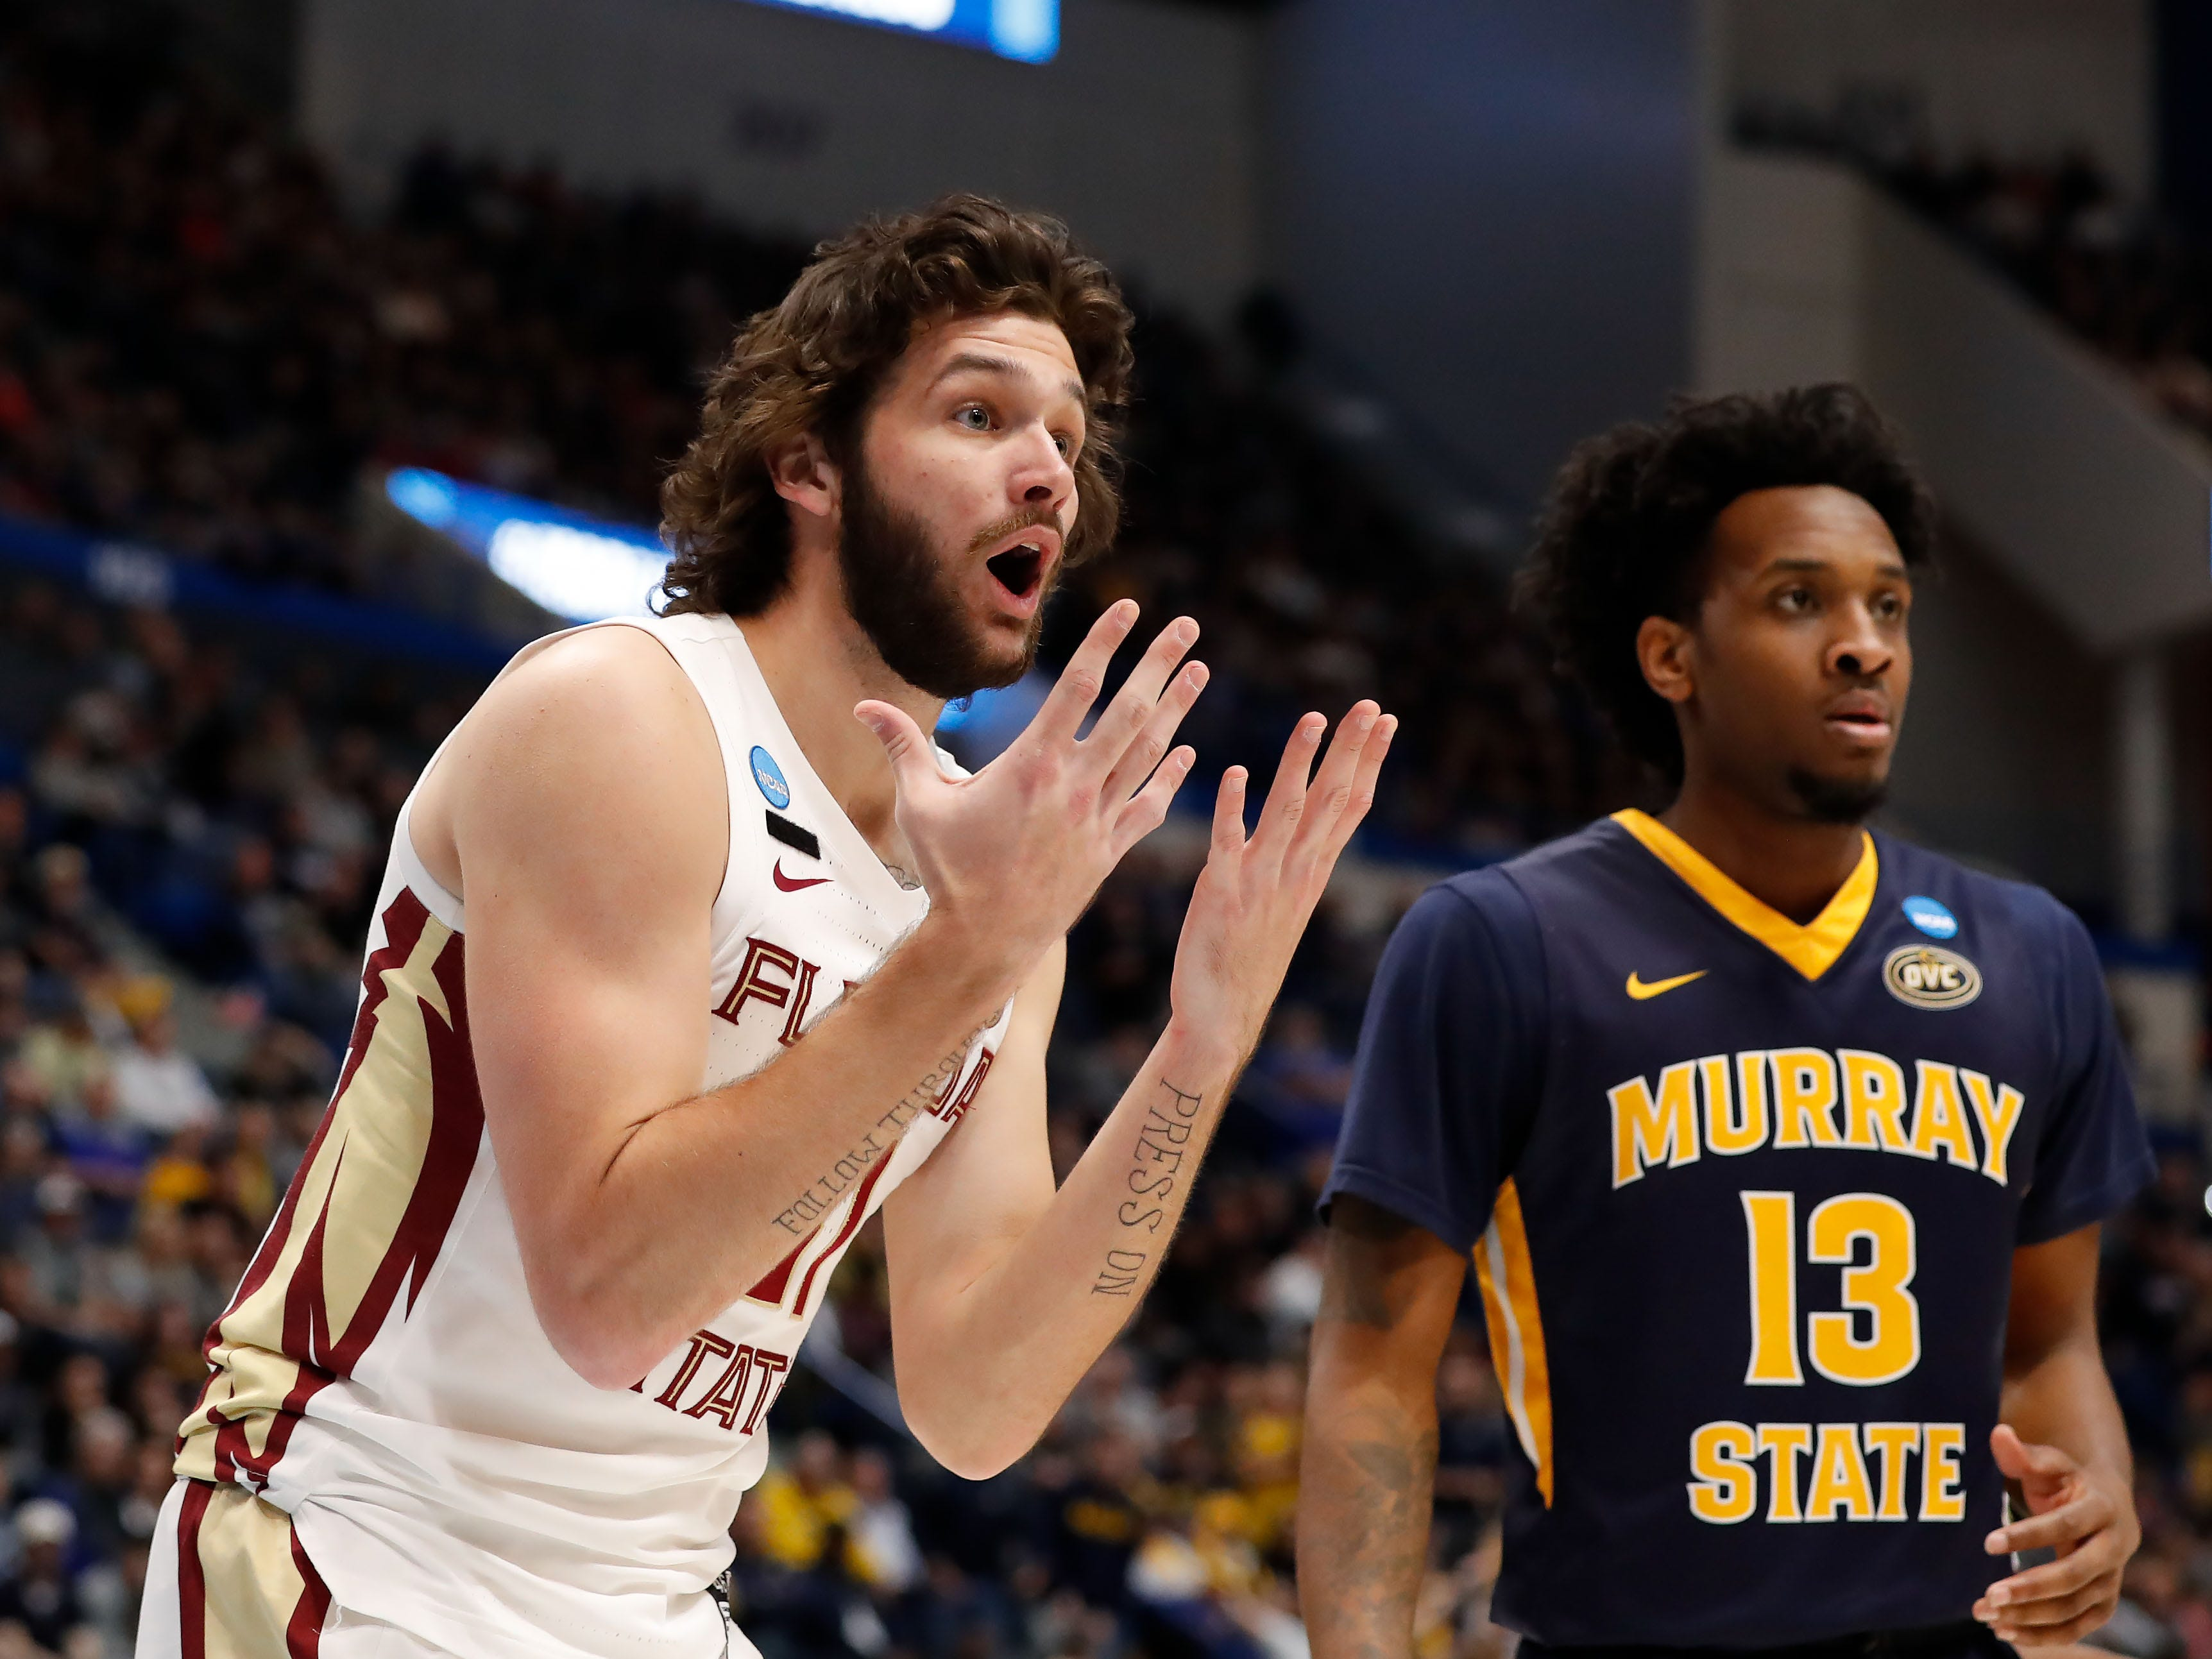 Mar 23, 2019; Hartford, CT, USA; Florida State Seminoles guard Wyatt Wilkes (31) reacts towards an official during the first half of a game against the Murray State Racers in the second round of the 2019 NCAA Tournament at XL Center. Mandatory Credit: David Butler II-USA TODAY Sports